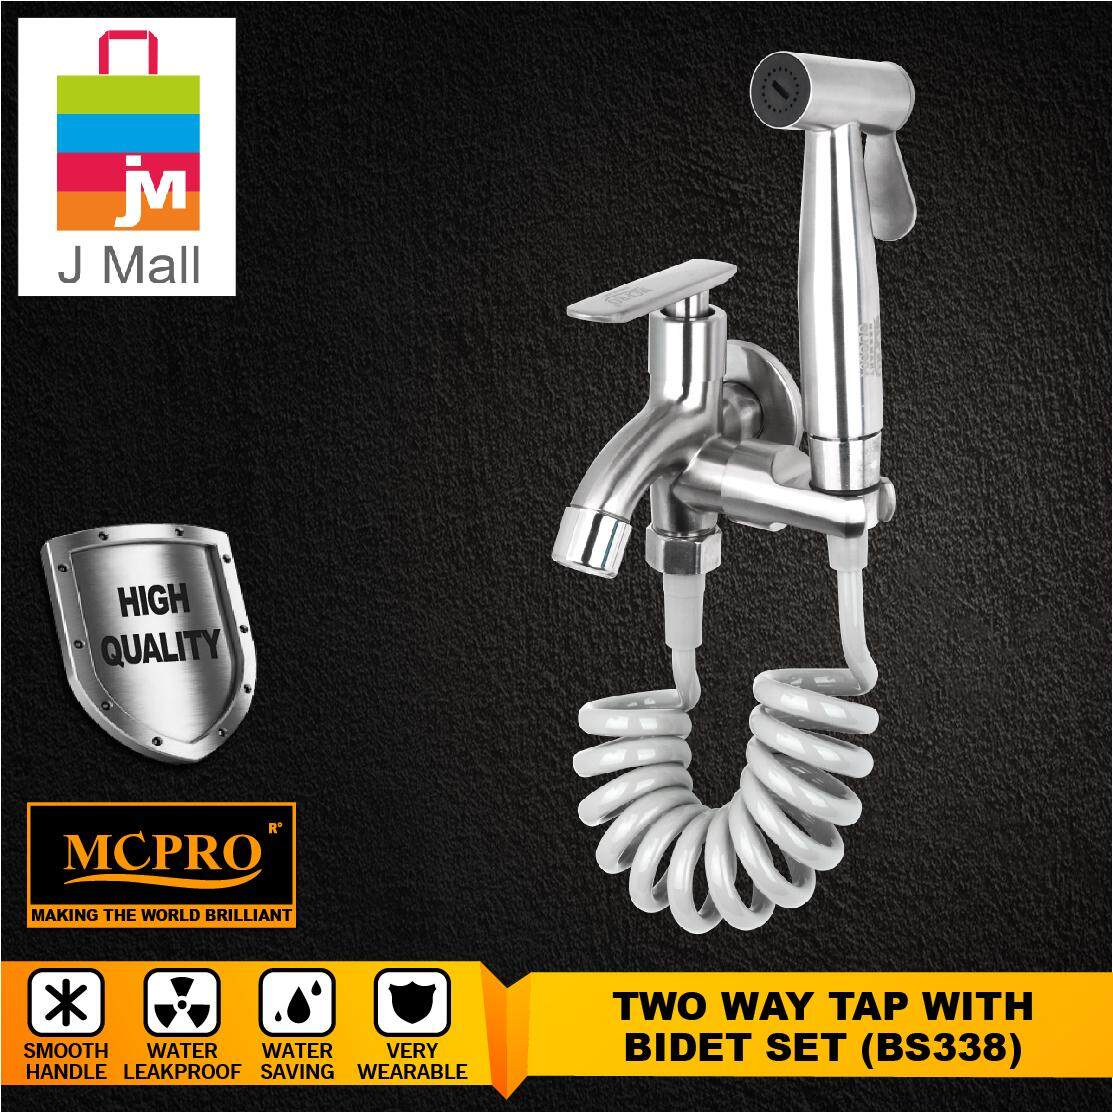 MCPRO Satin Finish Wall Bathroom Faucet TWO WAY TAP bidet spray holder with BIDET HOSE SET (BS338)